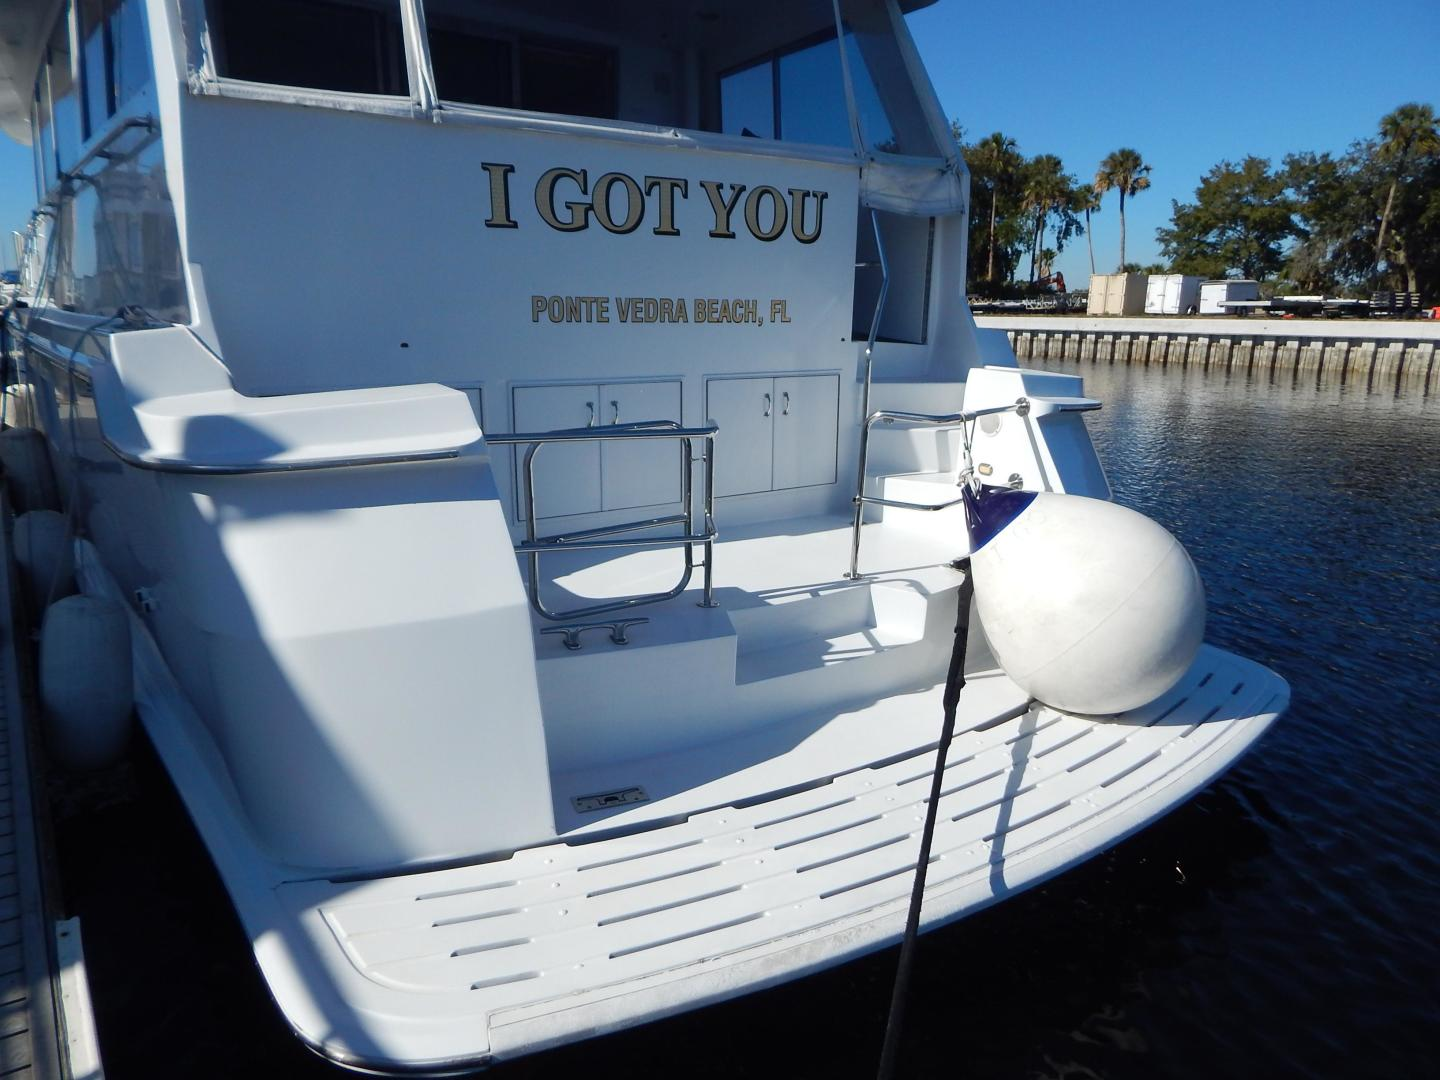 Hatteras-Sport Deck Motor Yacht 1998-I GOT YOU Jacksonville Beach-Florida-United States-1582436 | Thumbnail